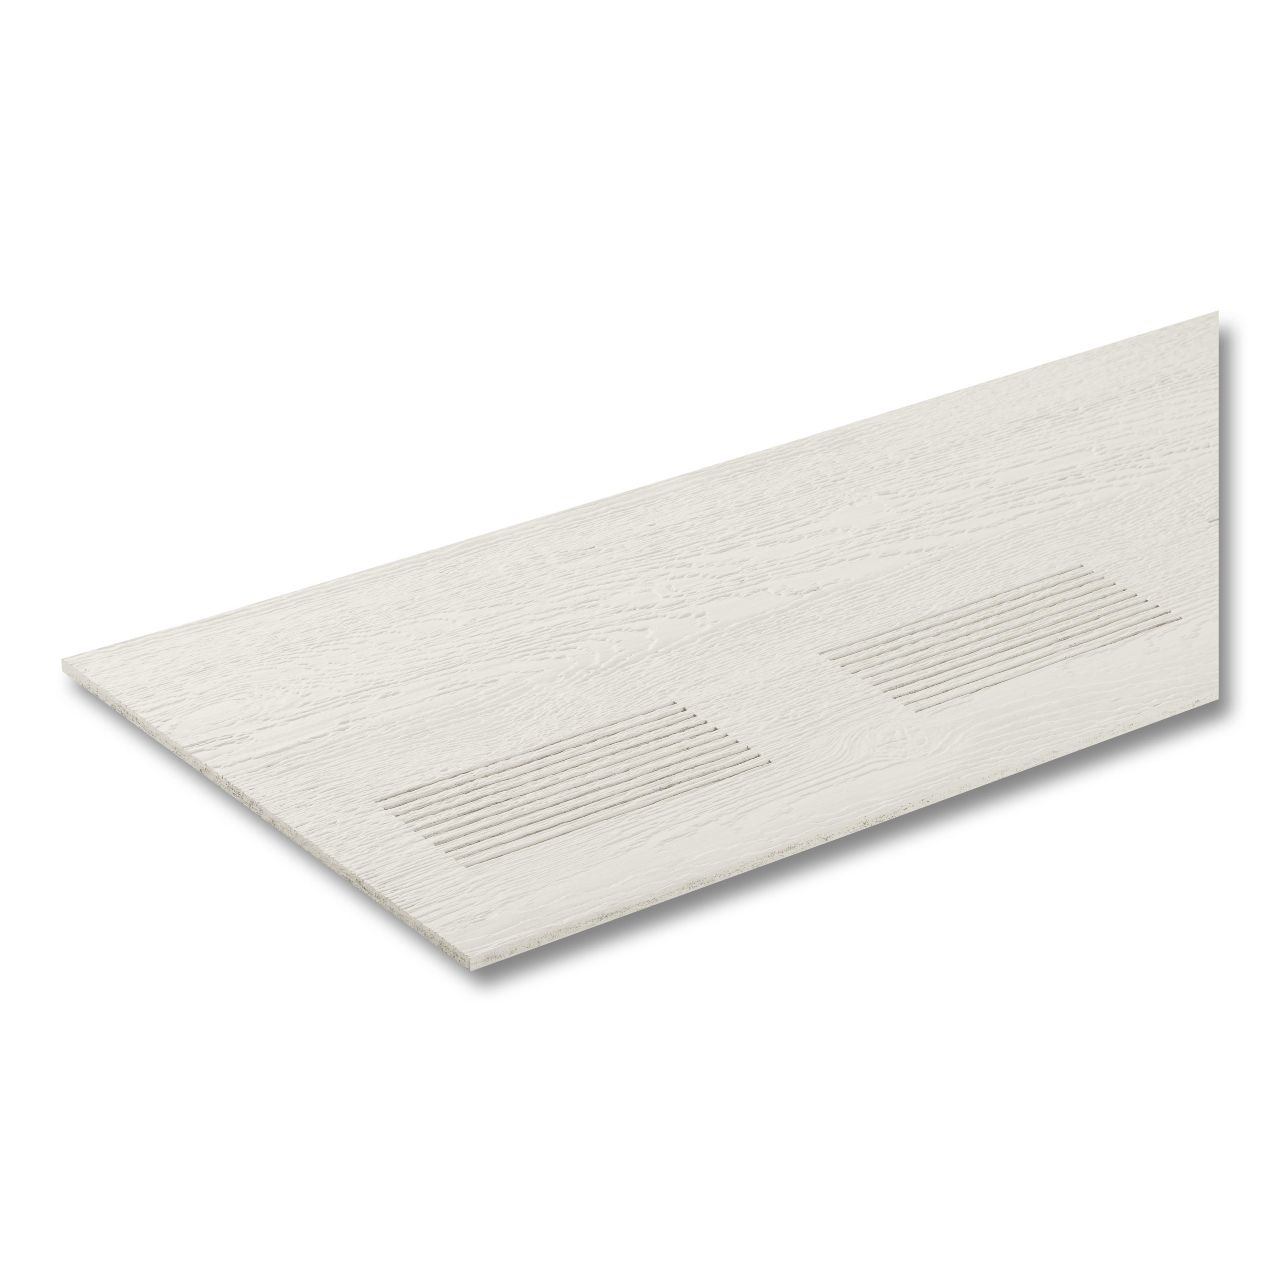 """LP SmartSide ExpertFinish 3/8"""" 16"""" x 16' 38 Series Cedar Texture Vented Soffit Engineered Wood Siding Snowscape White"""